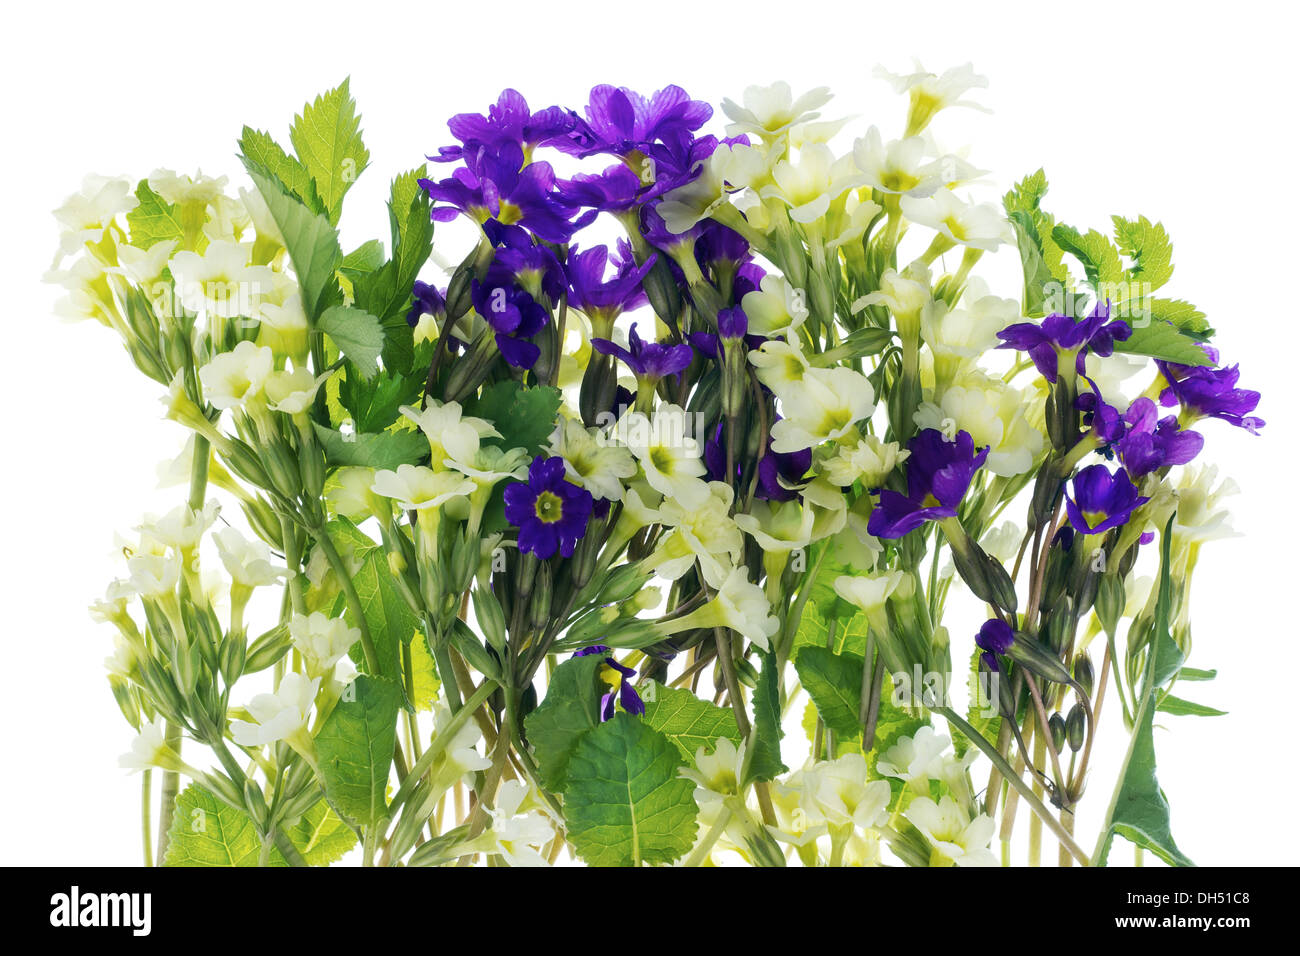 Bush of first springs flowers stock photo 62191144 alamy bush of first springs flowers mightylinksfo